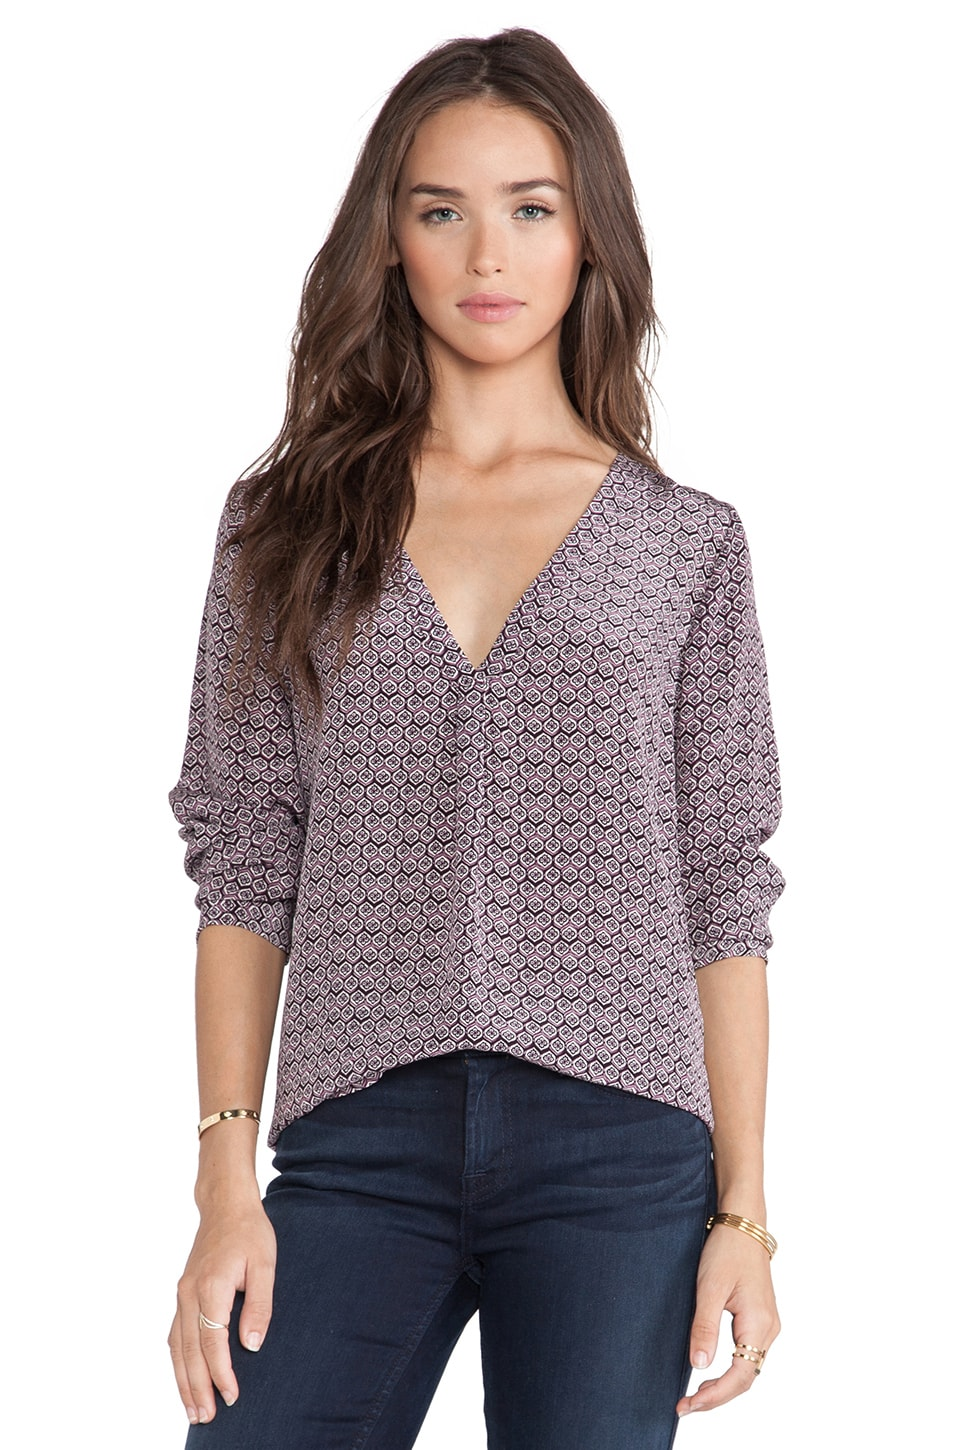 Joie Daryn Blouse in Shiraz